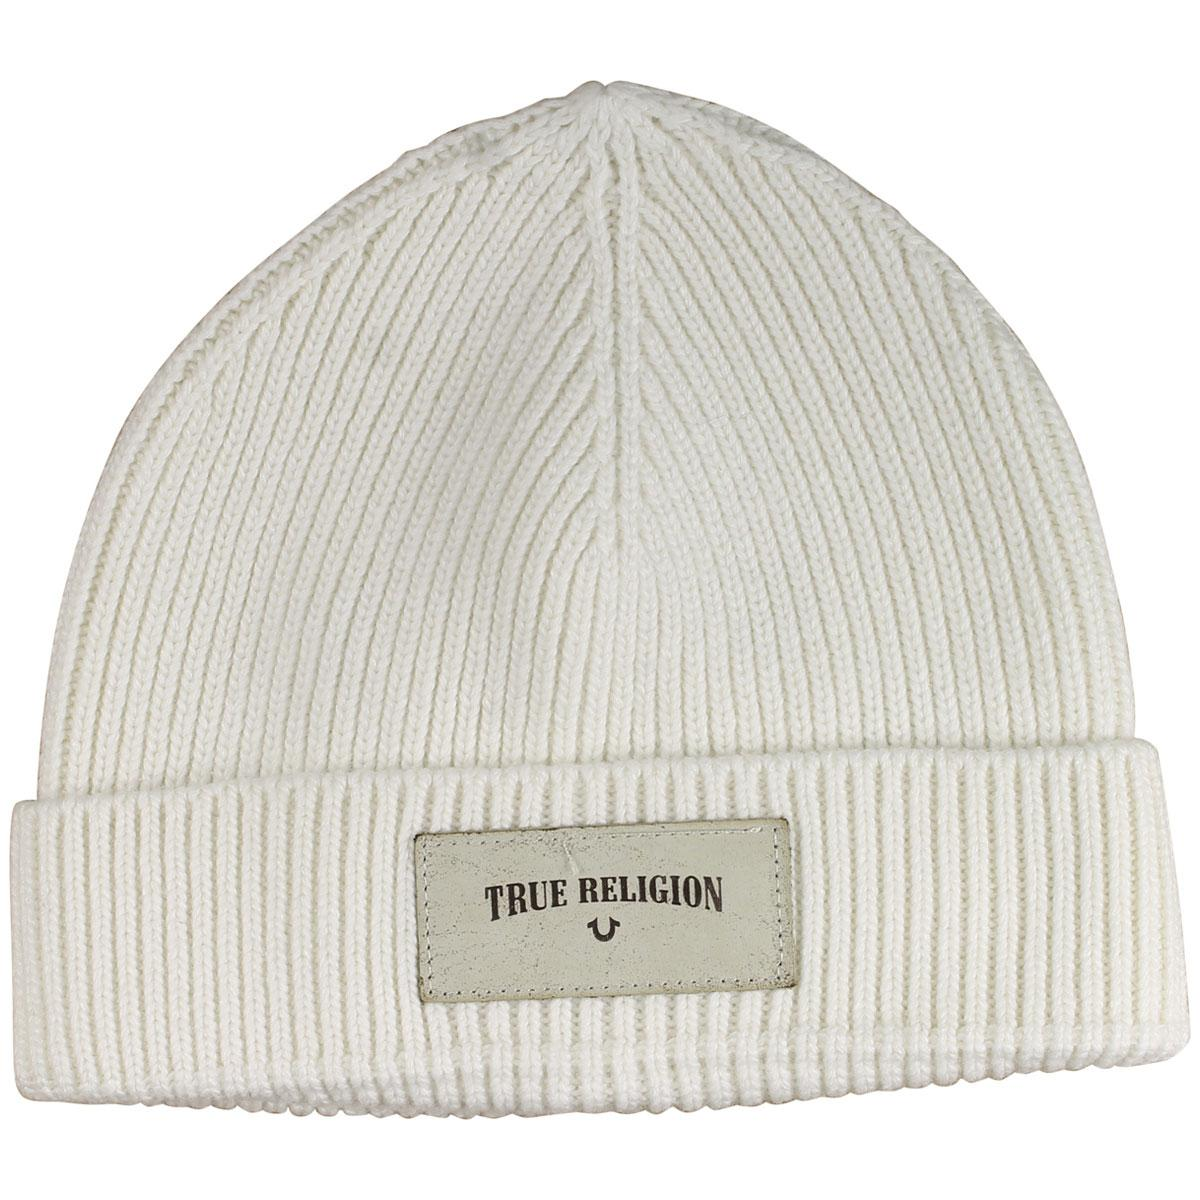 True Religion Men s Ribbed Knit Watchcap Hat Ribbed Knit Watchcap; TR2125